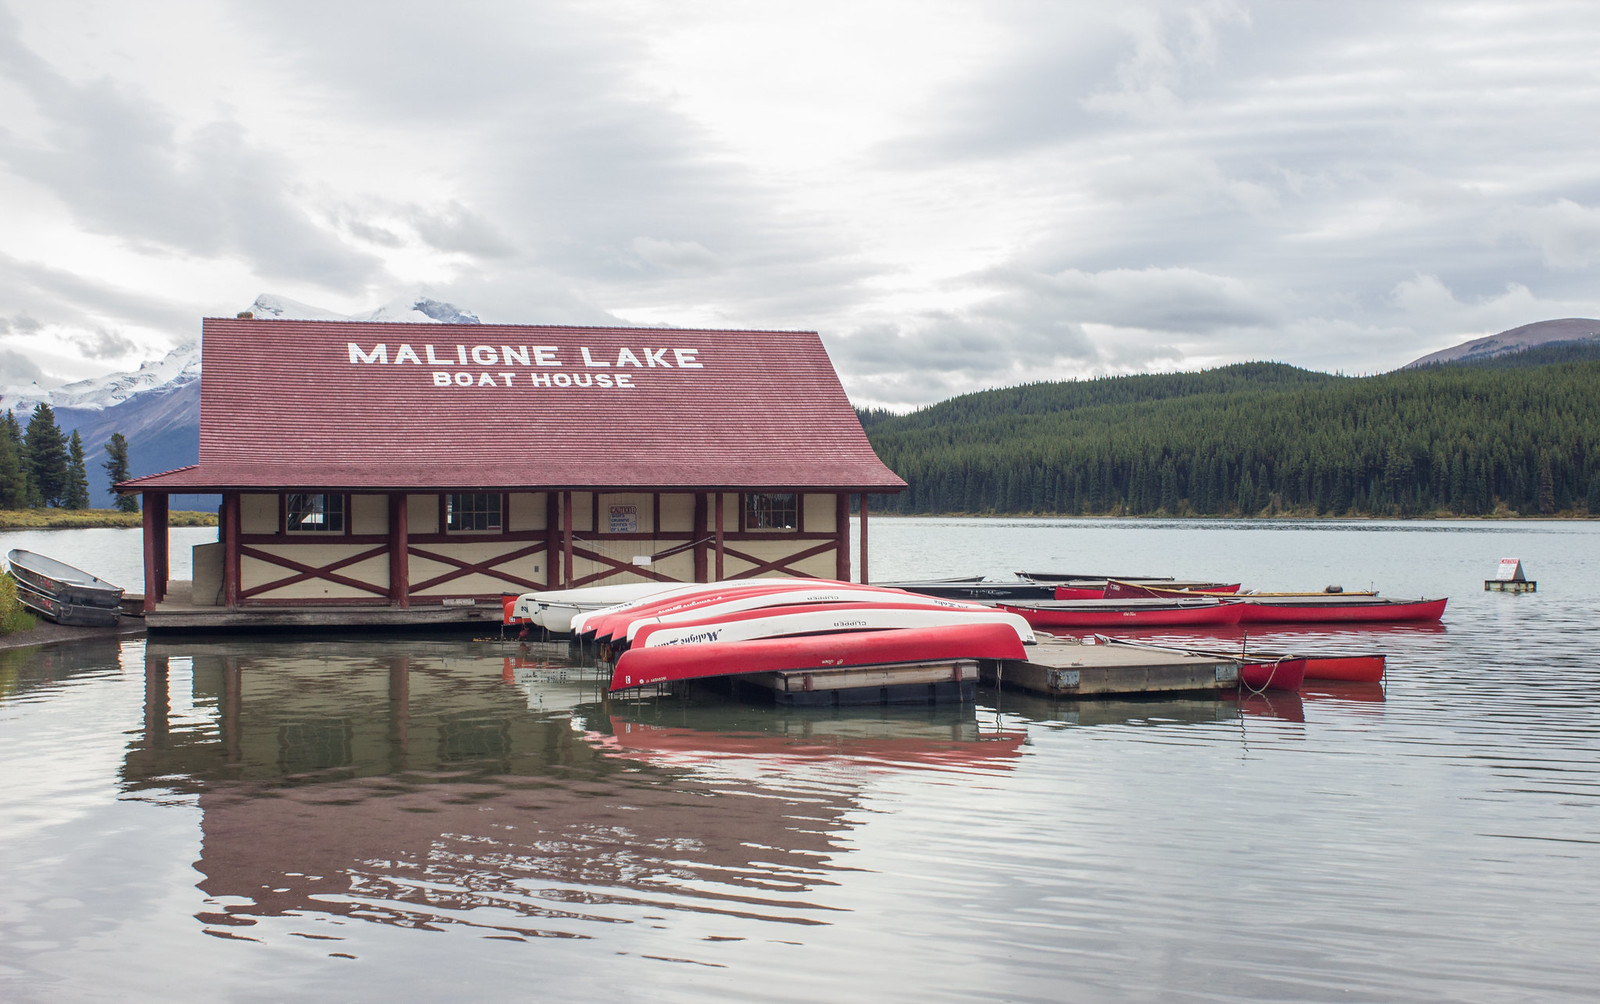 Maligne Lake boat house and kayak rental